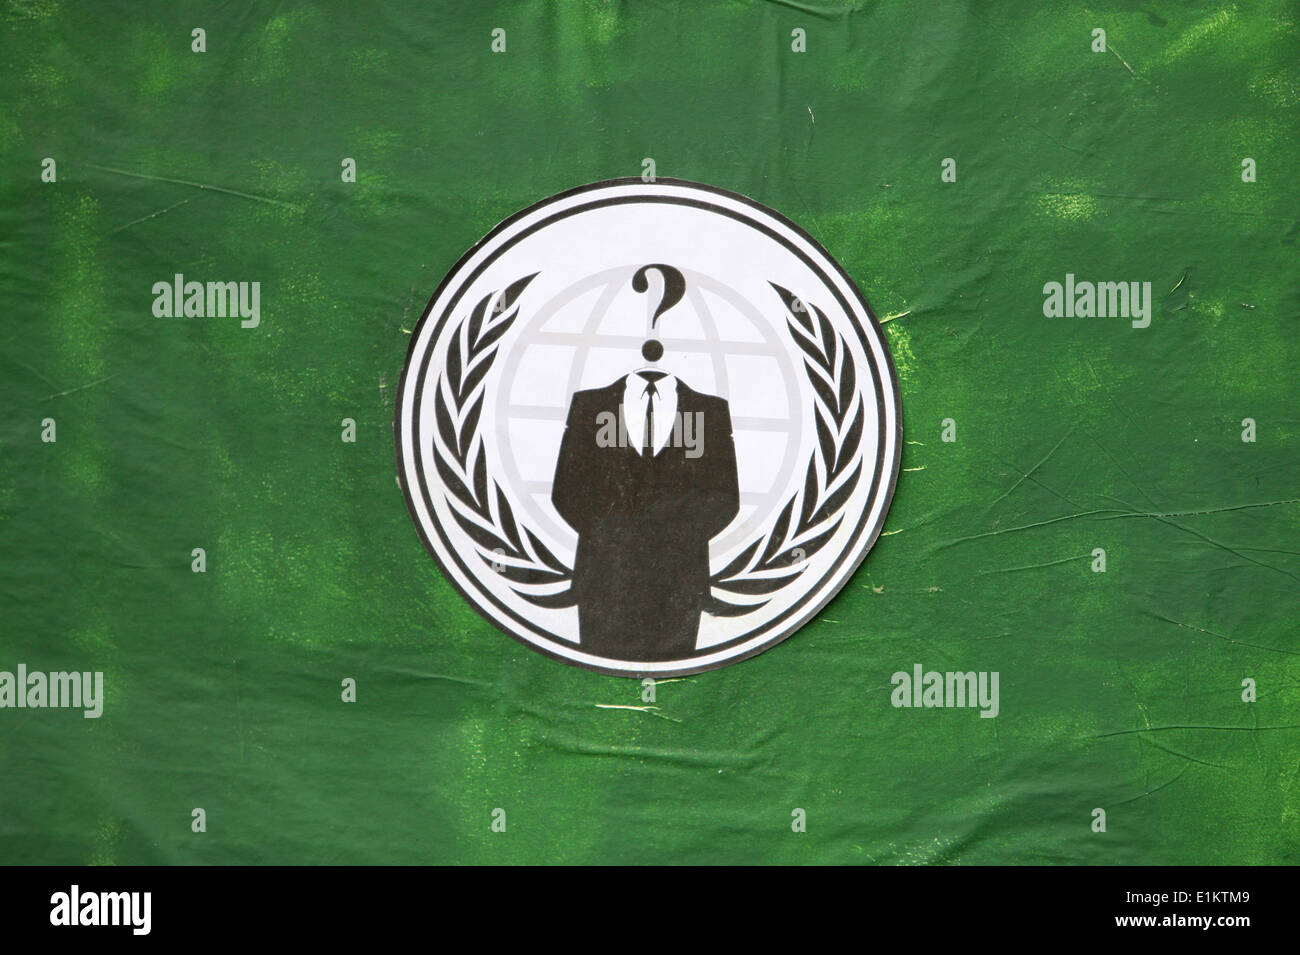 A flag conveying symbolism associated with the Anonymous. The imagery of the 'suit without a head' represents leaderless organiz - Stock Image